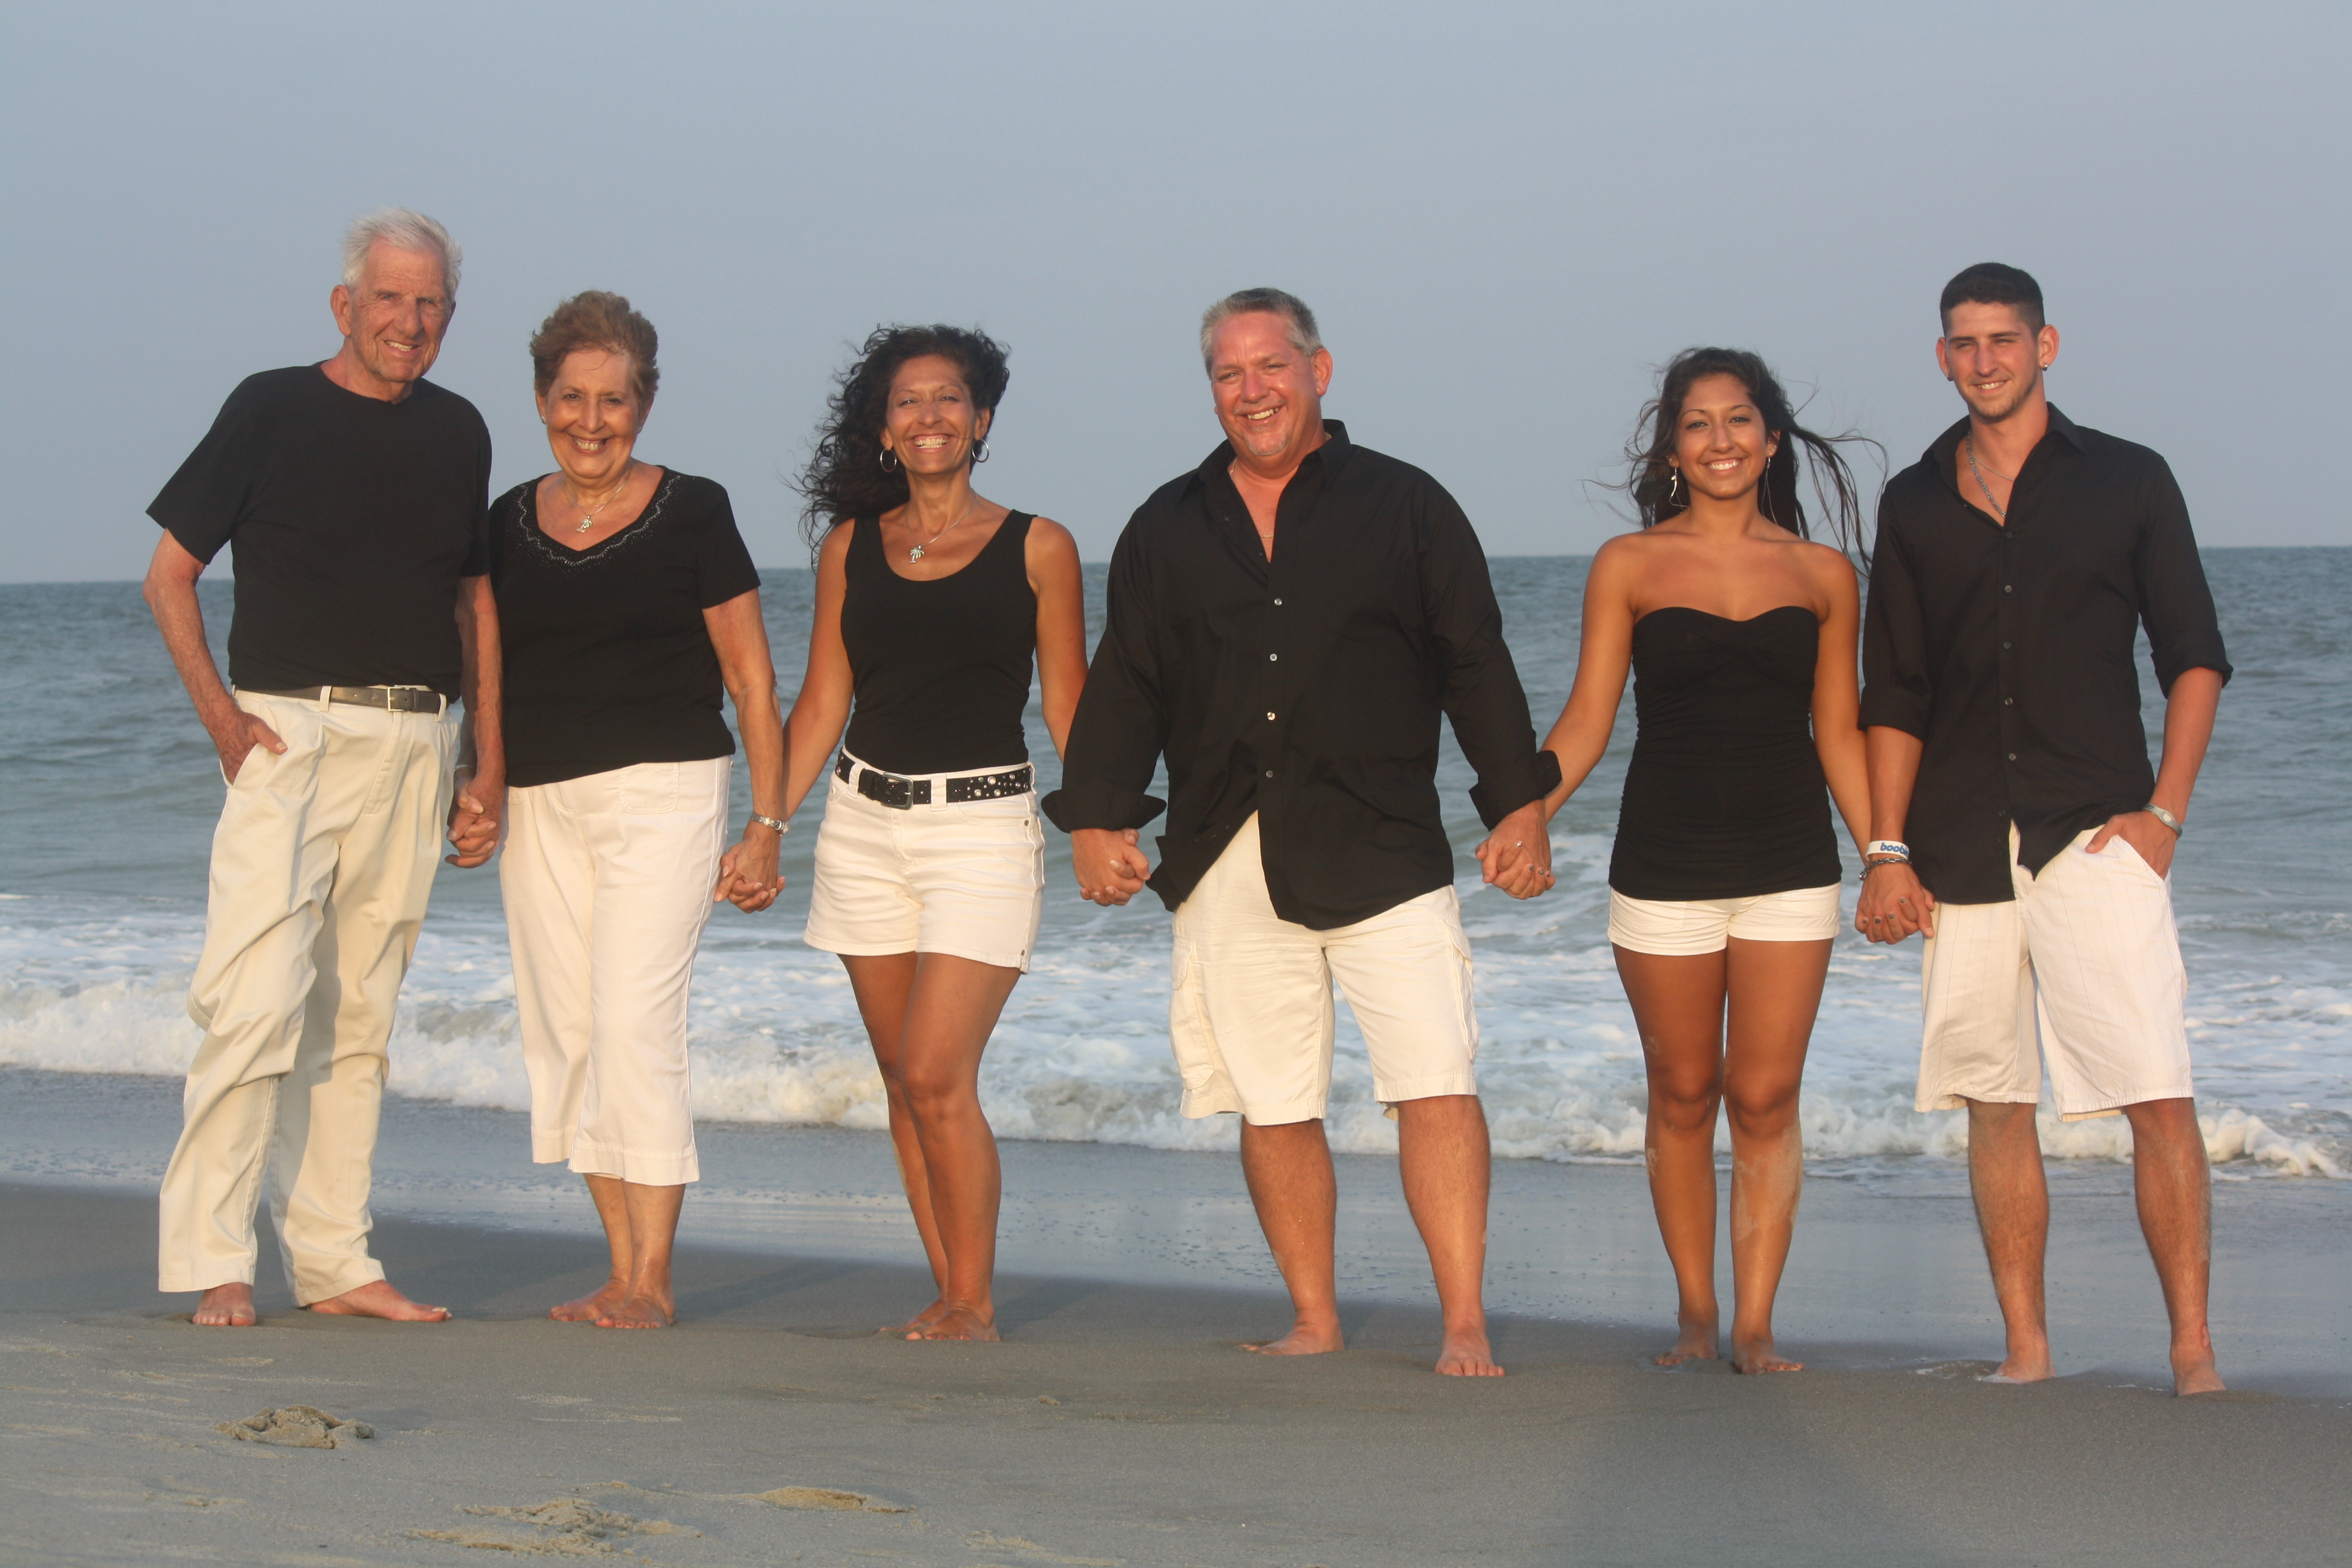 For Family Pictures Best 25 Family Beach Portraits Ideas On Pinterest Family Beach